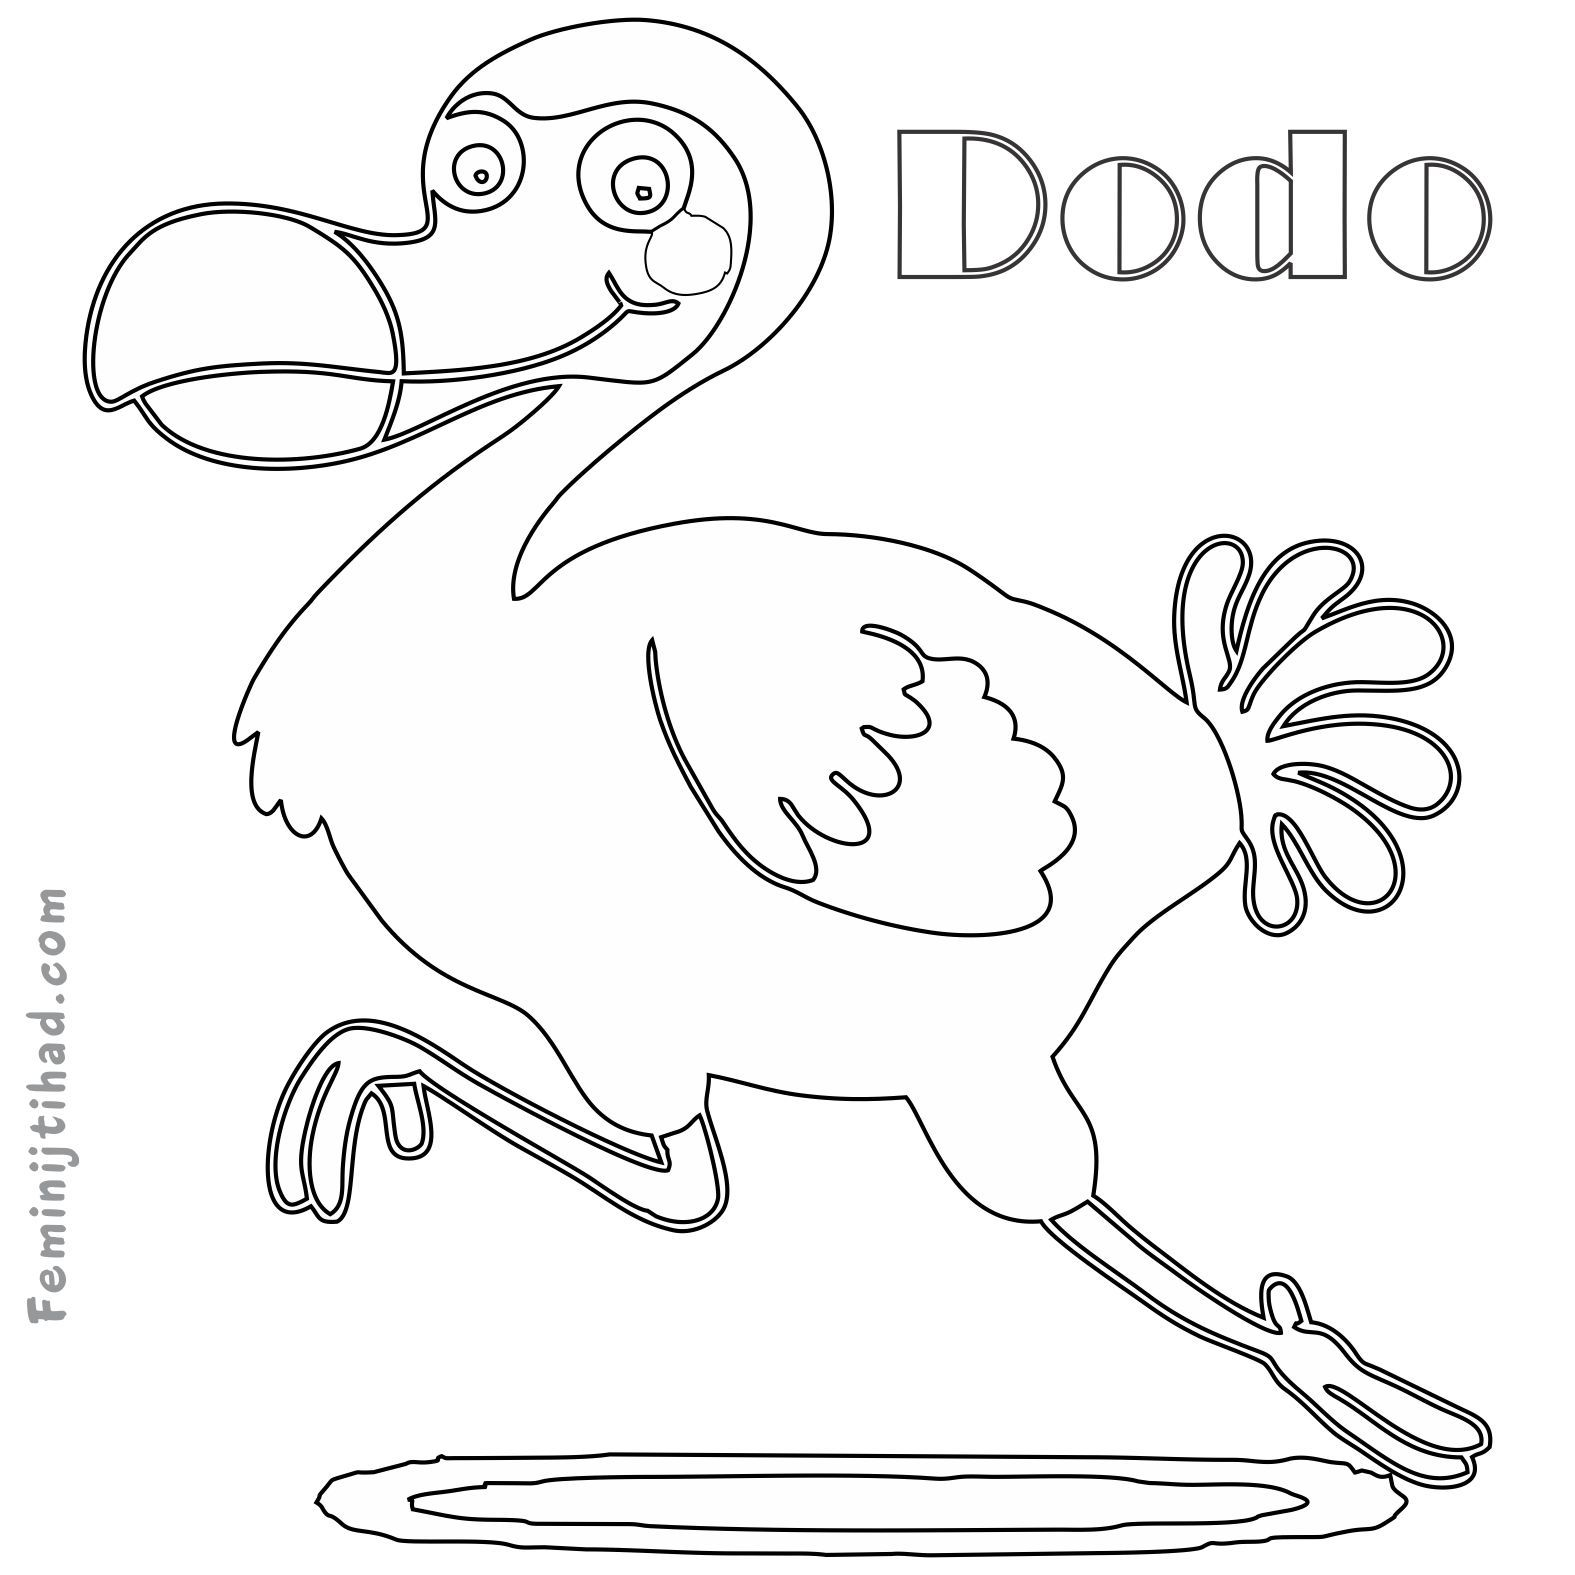 Dodo Outline With Images Bird Coloring Pages Bird Outline